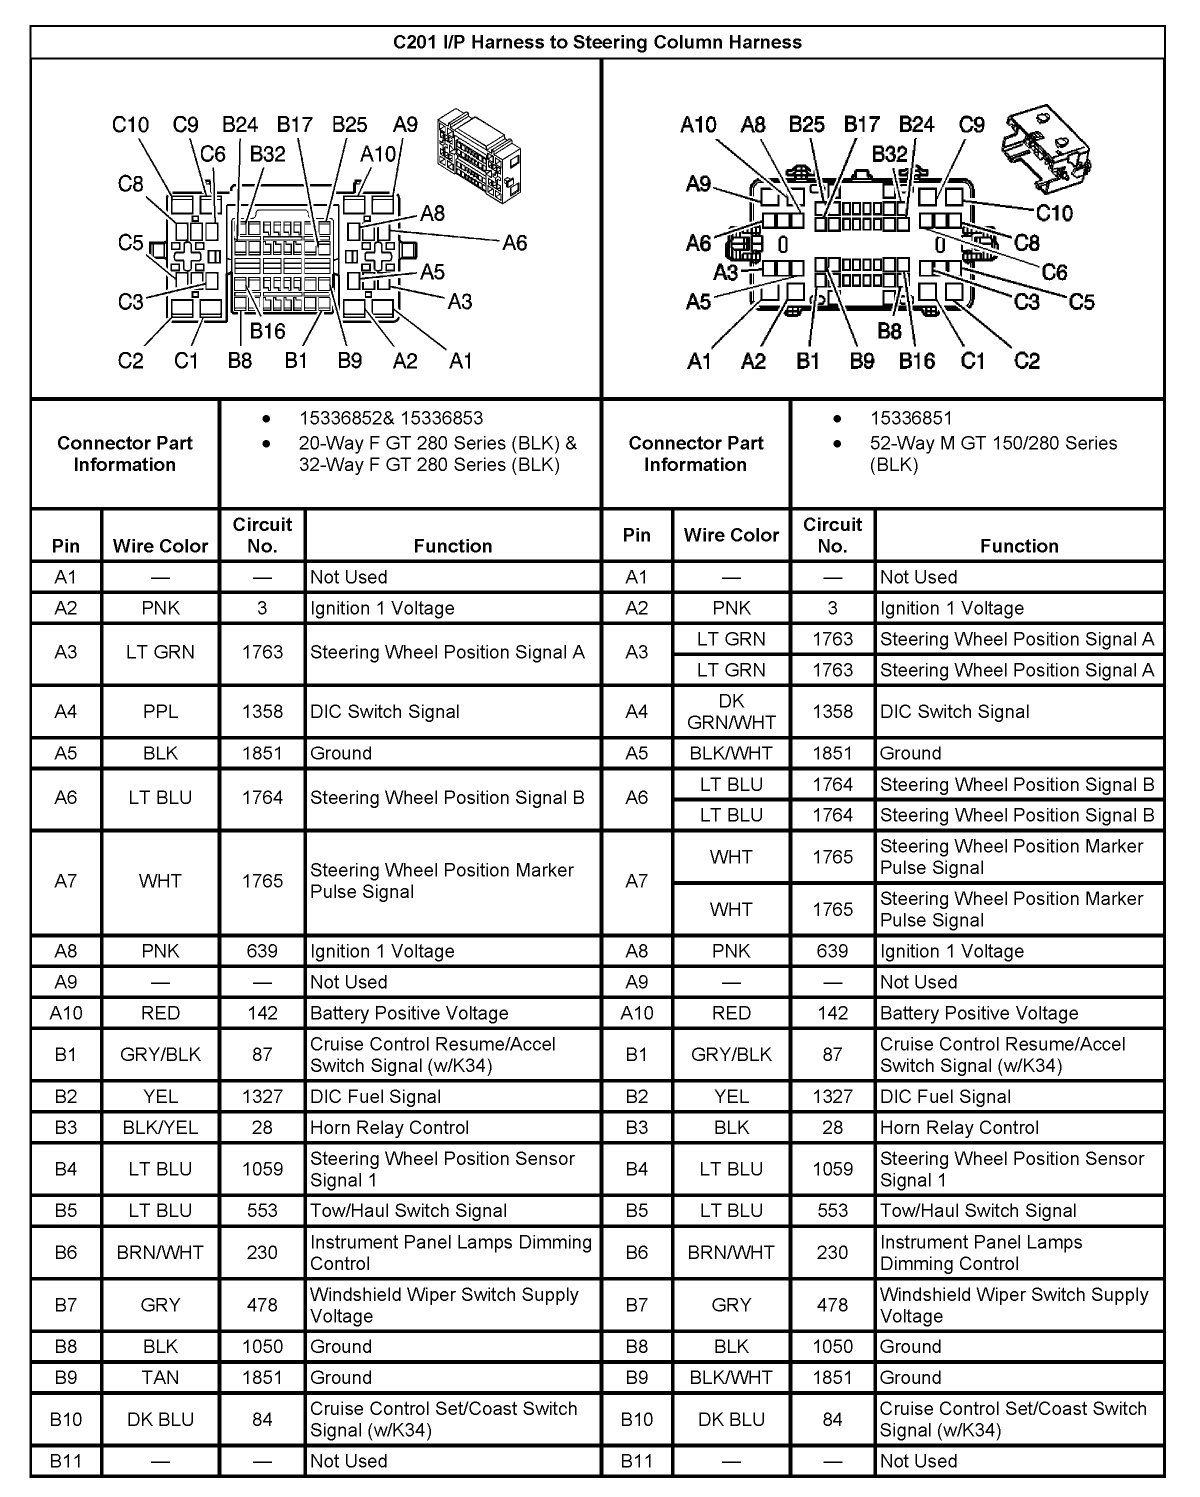 1989 gmc sierra radio wiring diagrams 2004 gmc sierra radio wiring diagram | free wiring diagram 1991 gmc sierra radio wiring diagram